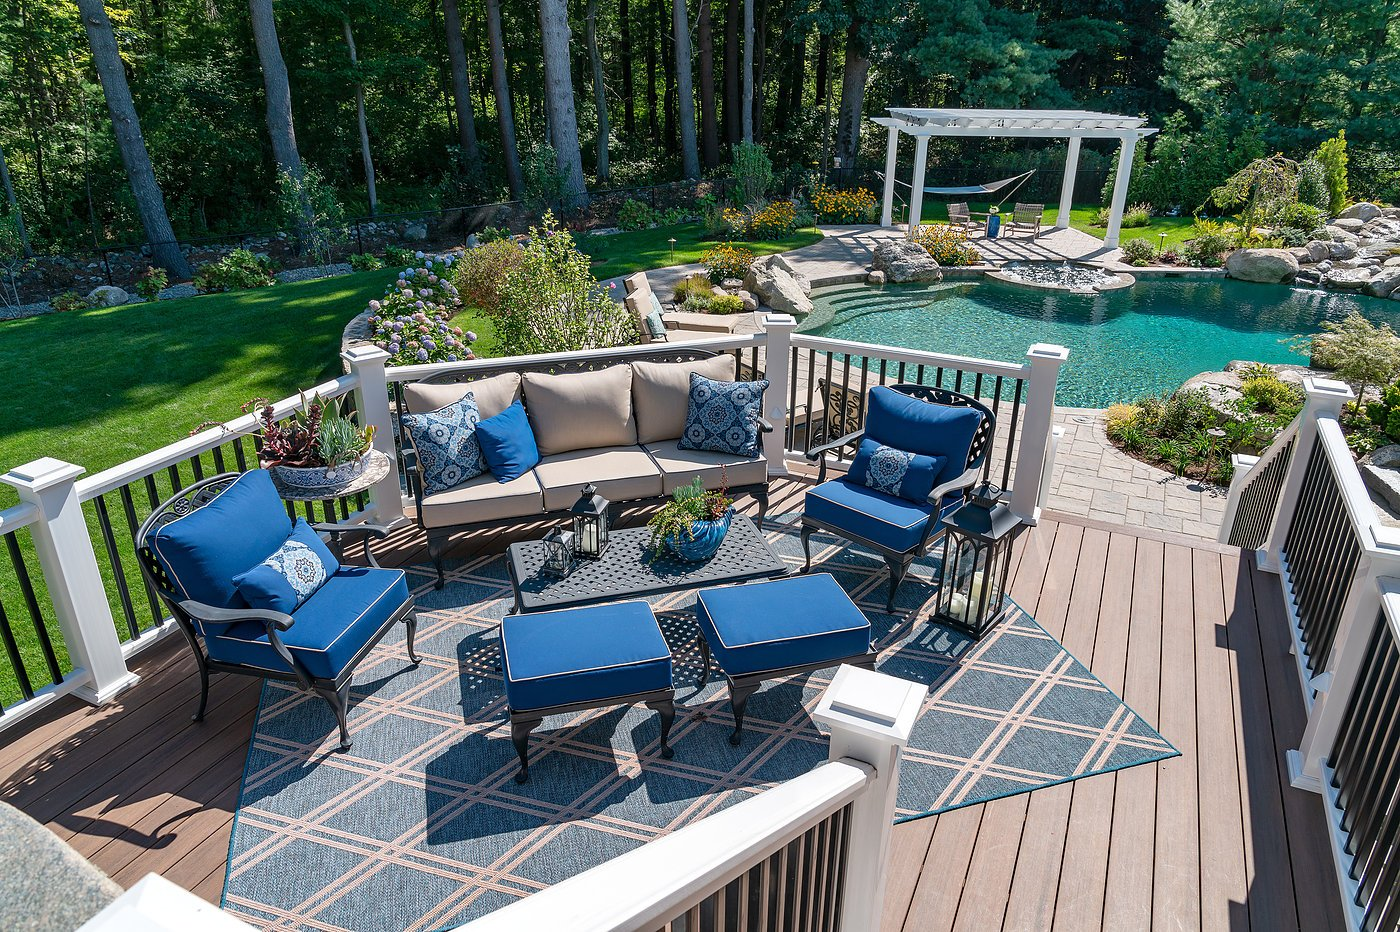 How to create a backyard entertainment area for family and friends' social enjoyment